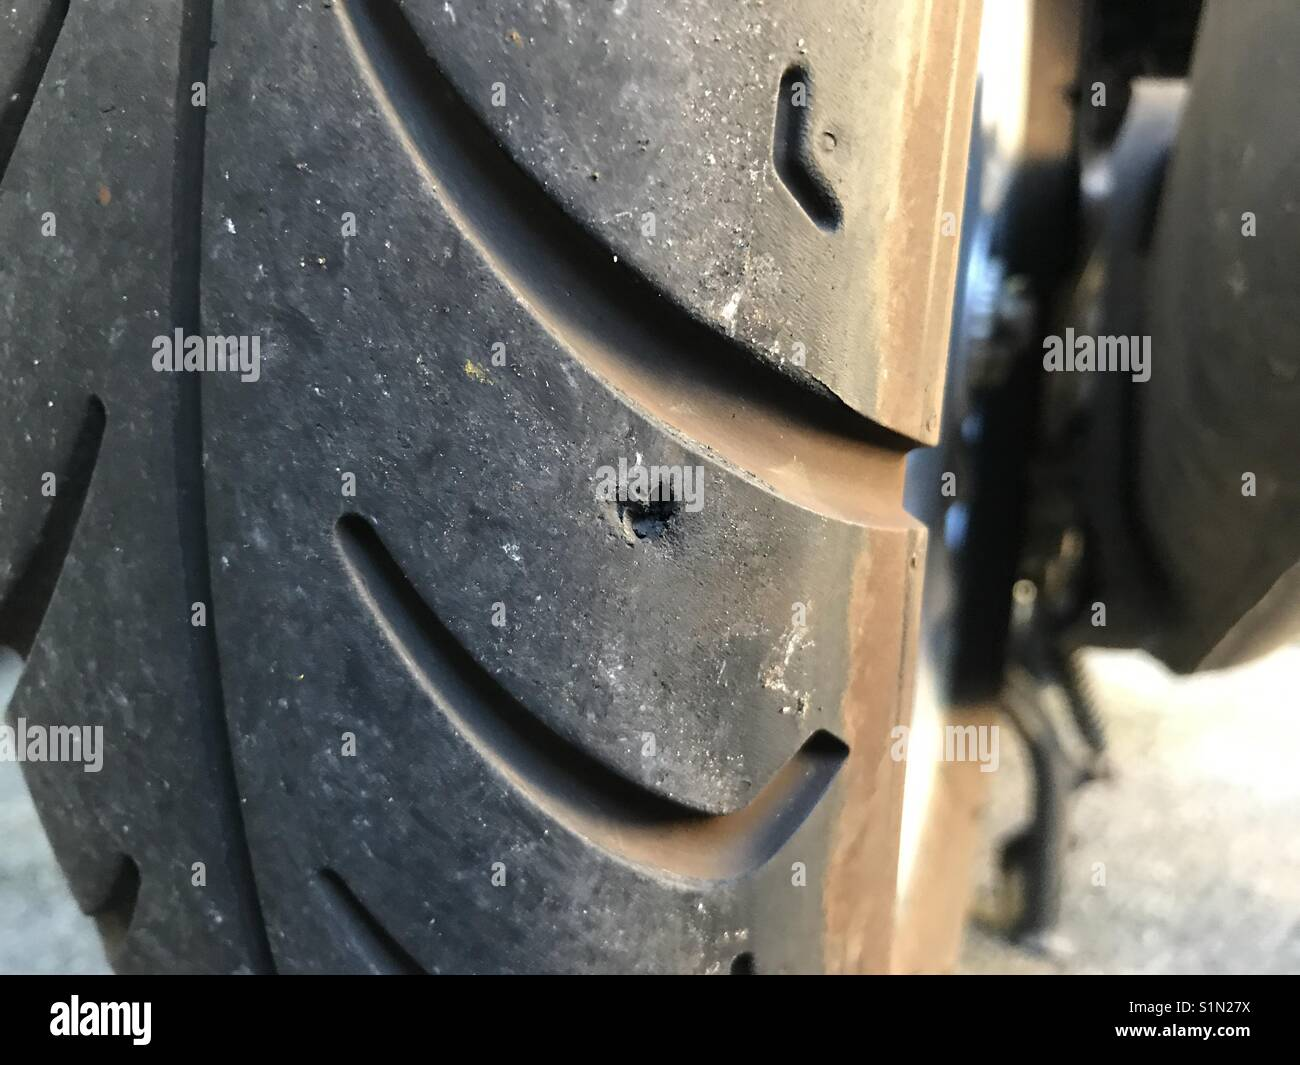 tyre puncture stock photos tyre puncture stock images alamy